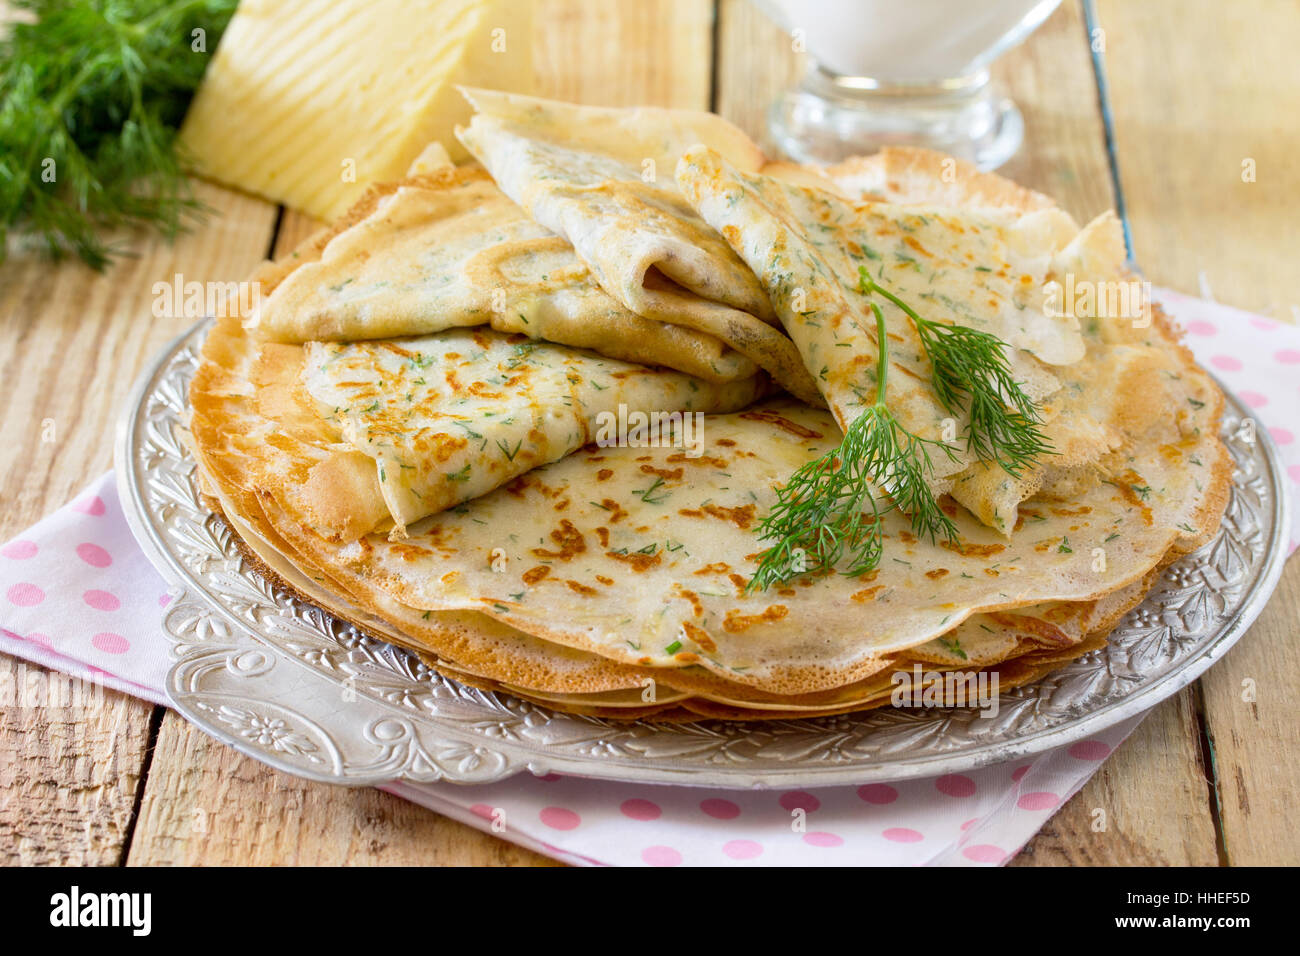 Not sweet pancakes with cheese and fresh dill on a wooden table. Breakfast, snack or brunch. Healthy food concept. - Stock Image